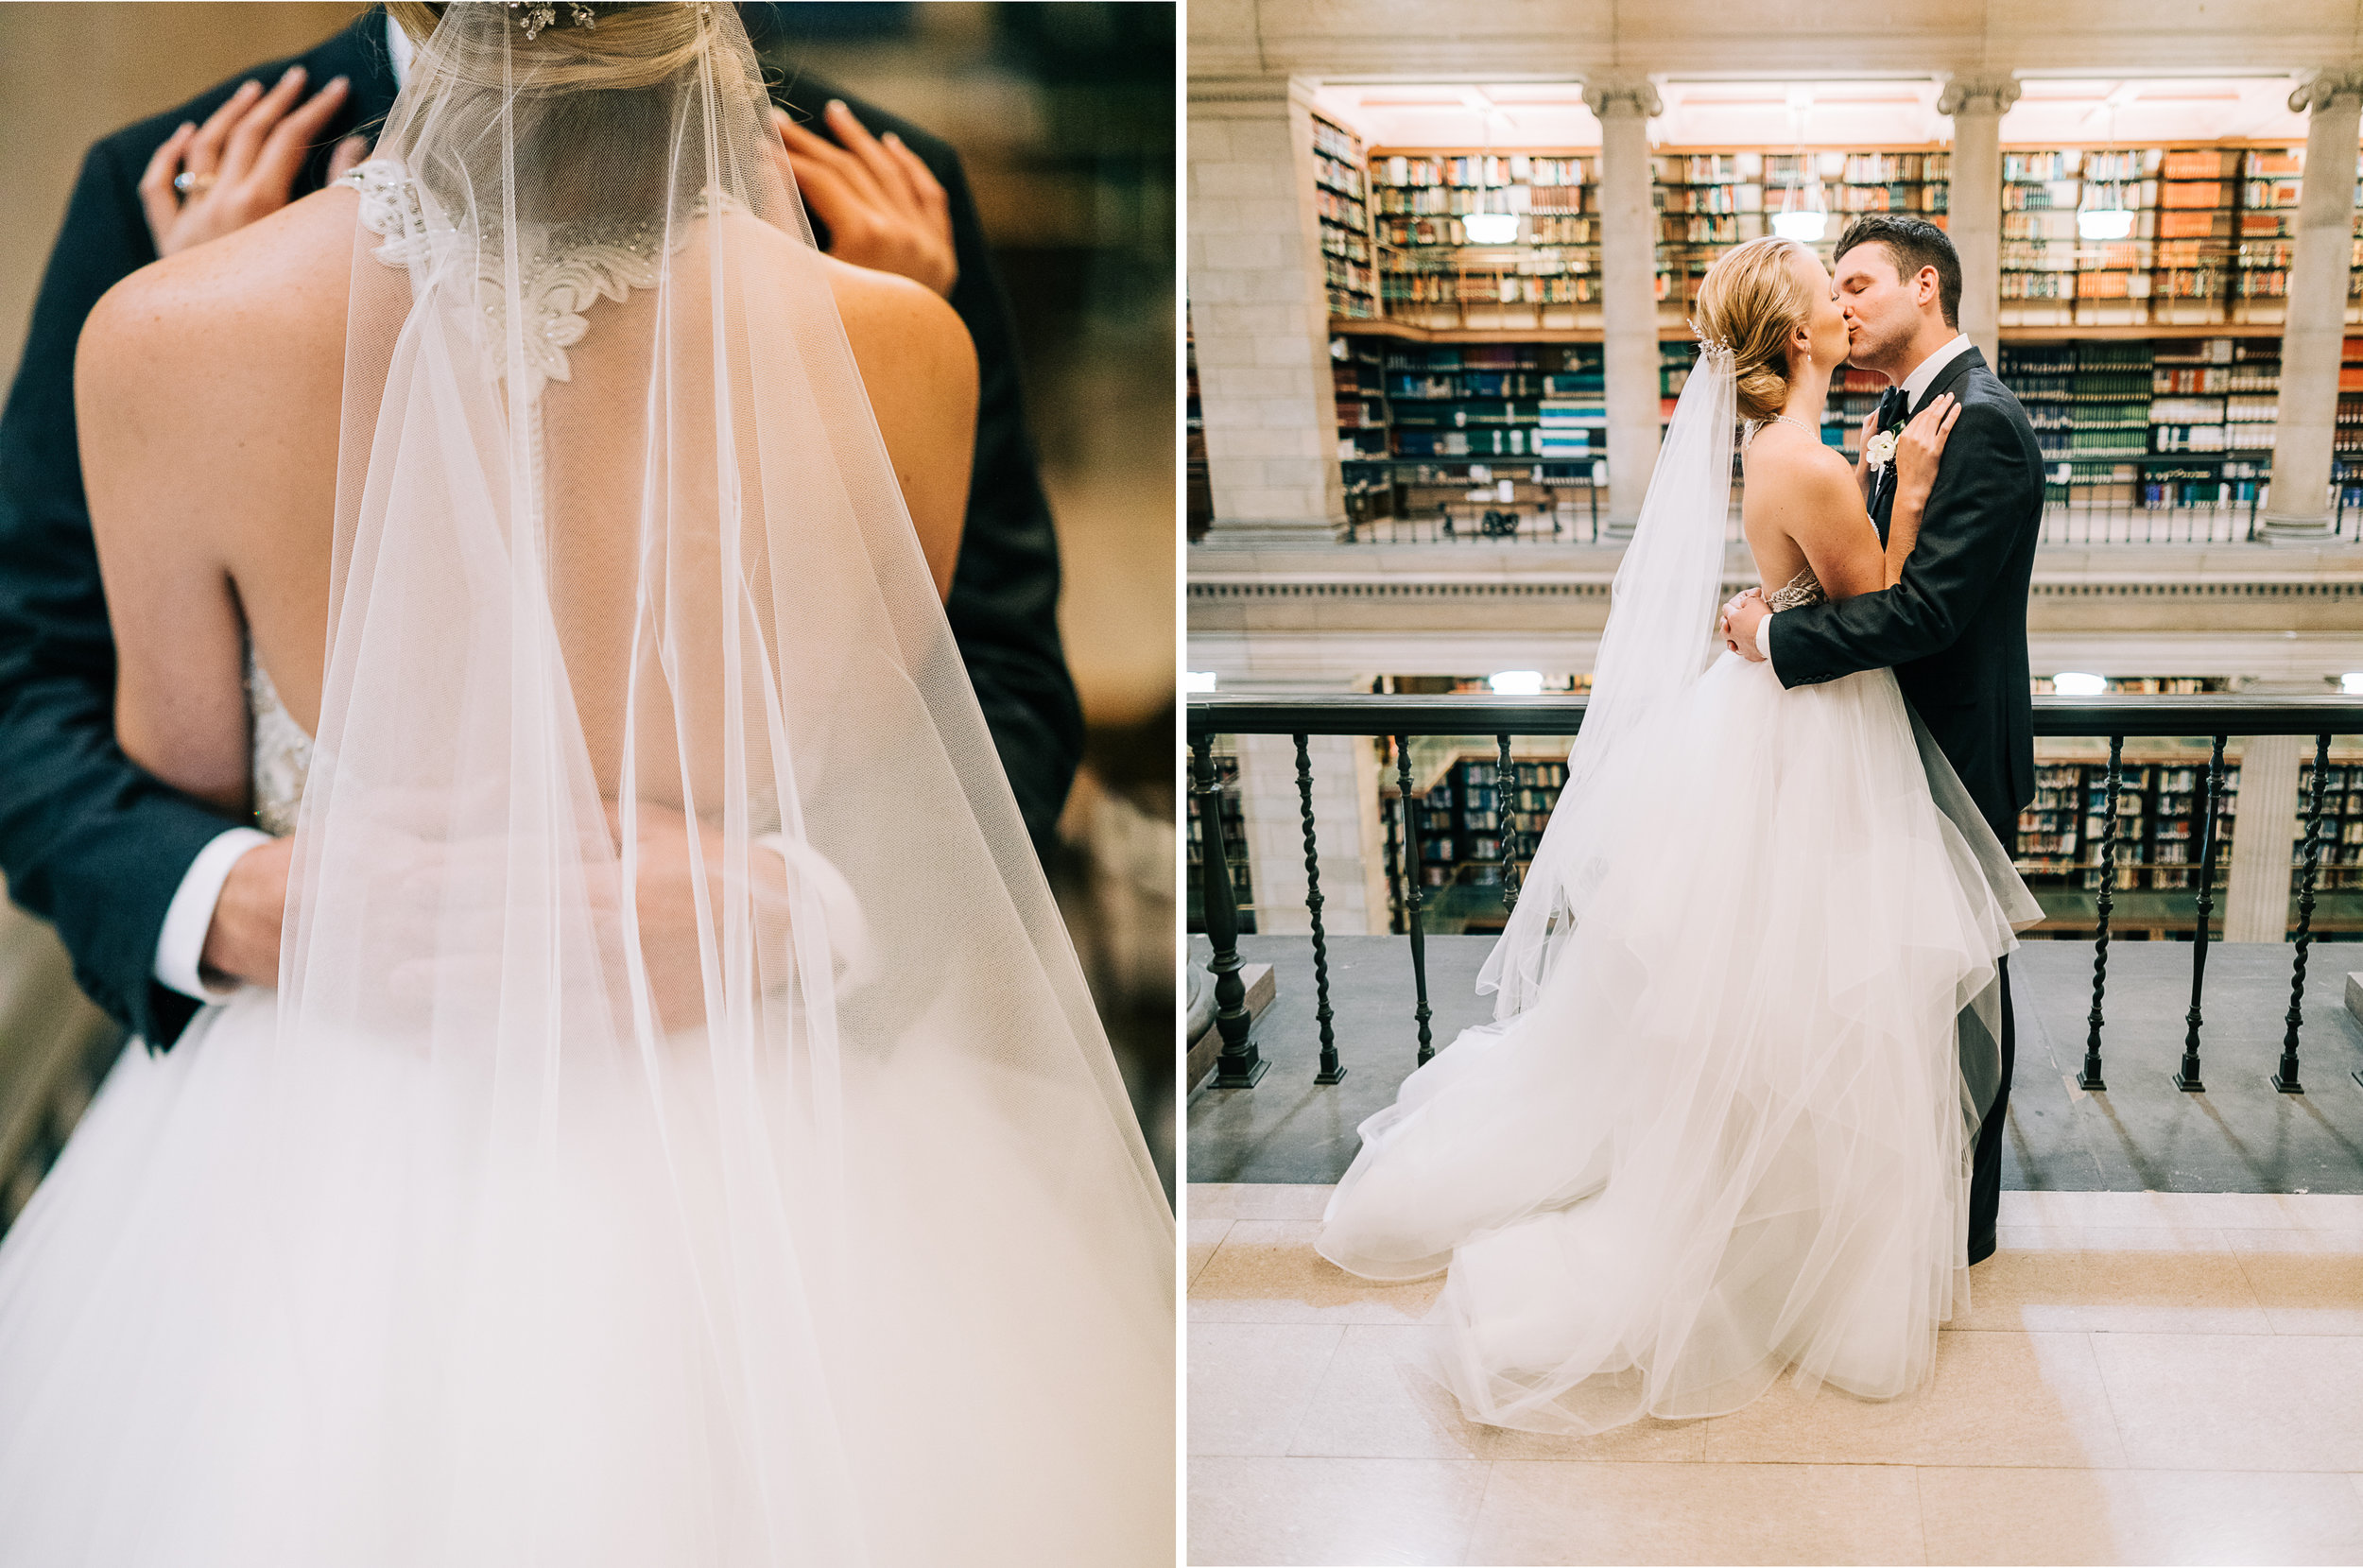 James Hill Library Wedding in Saint Paul, MN